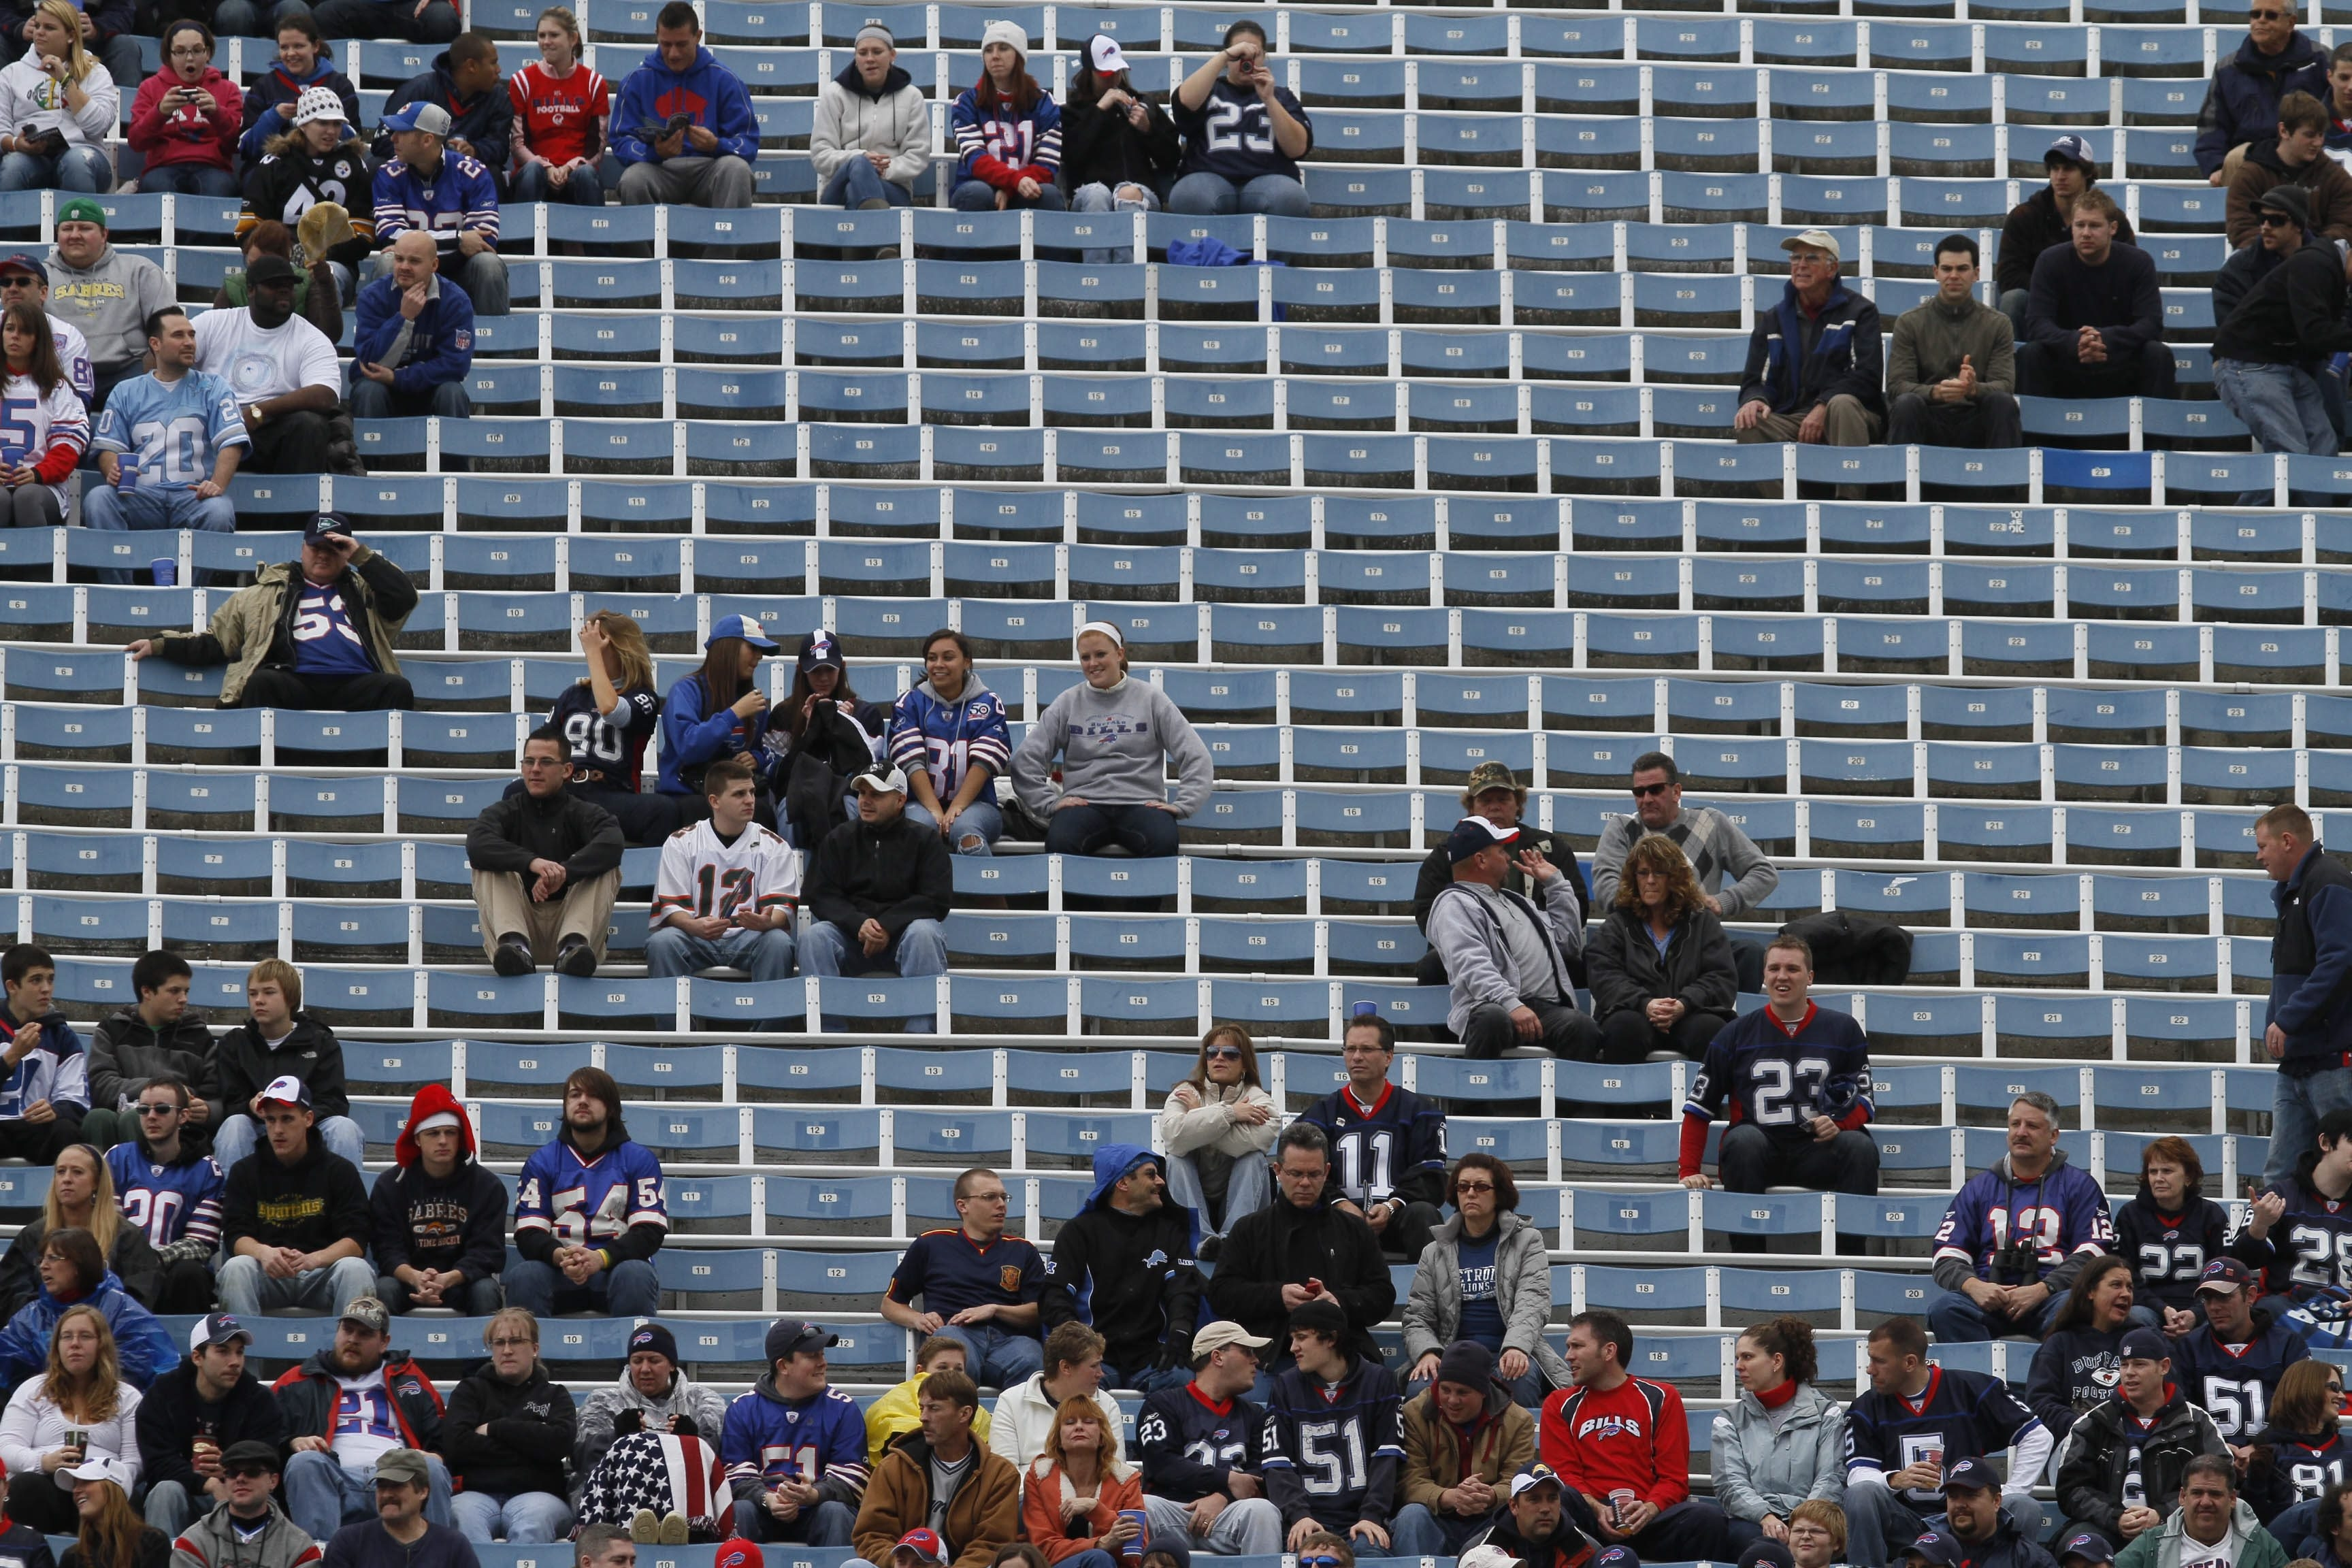 Empty seats during Buffalo Bills games may no longer threaten broadcasts of the games under a proposal made Friday by the Federal Communications Commission.